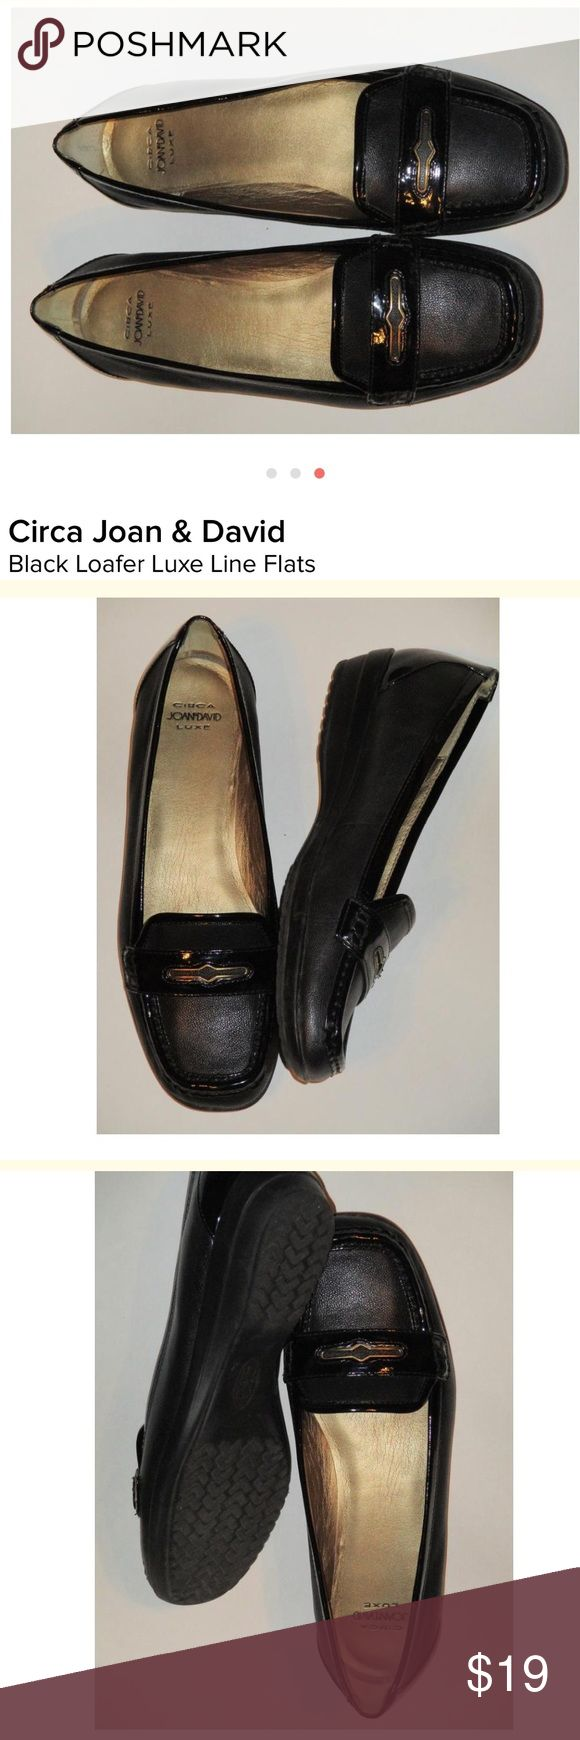 Circa Joan & David Luxe Black Leather Loafer SZ 8 Gorgeous!! Joan & David Shoes Flats & Loafers